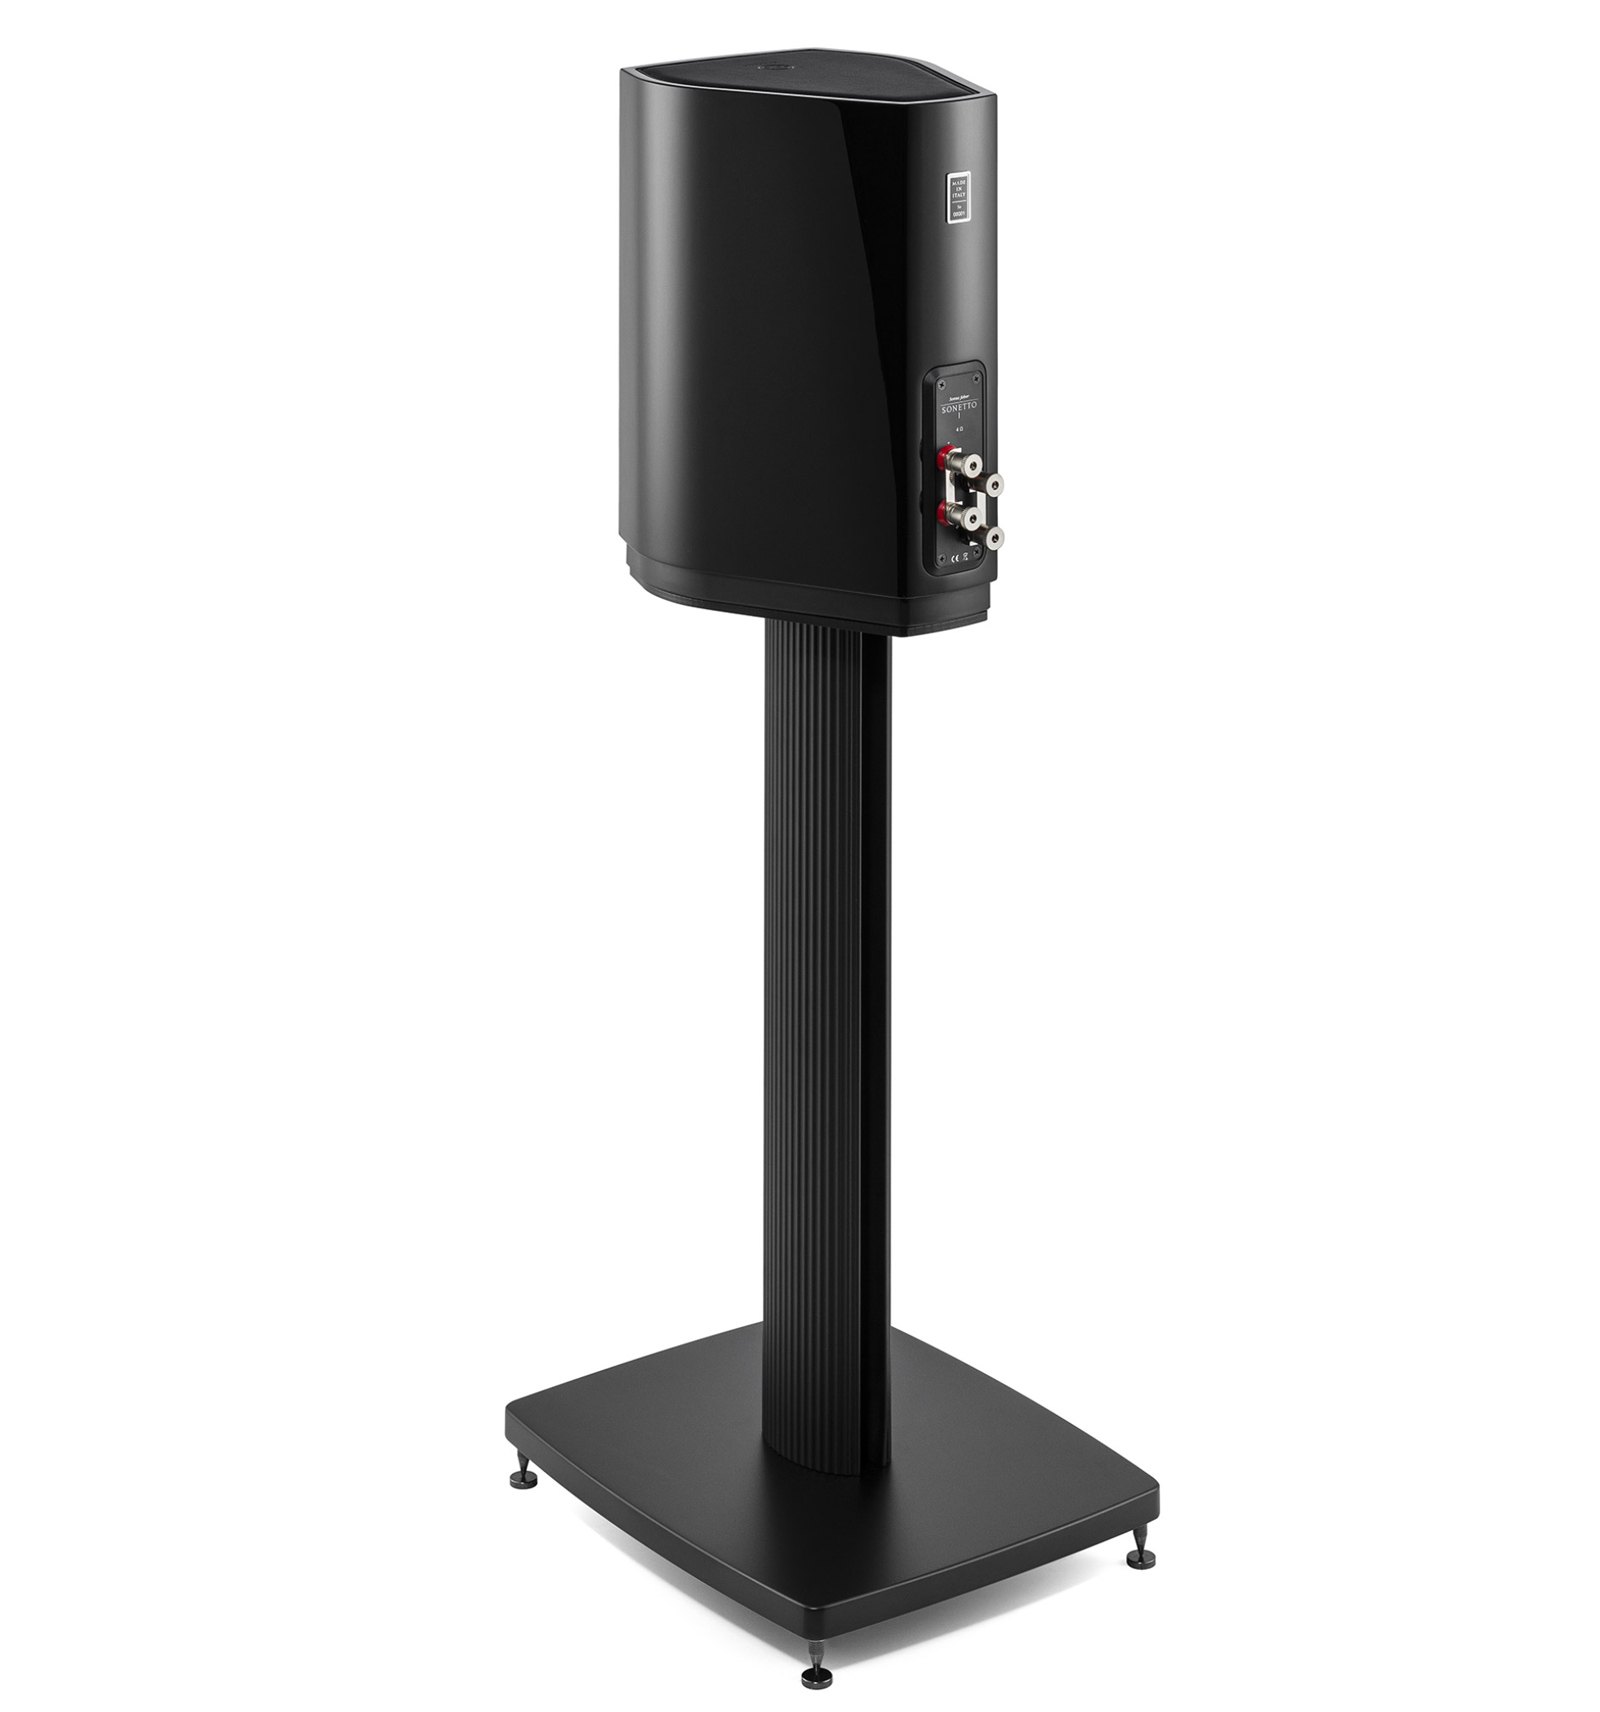 Sonetto 1 Specifications